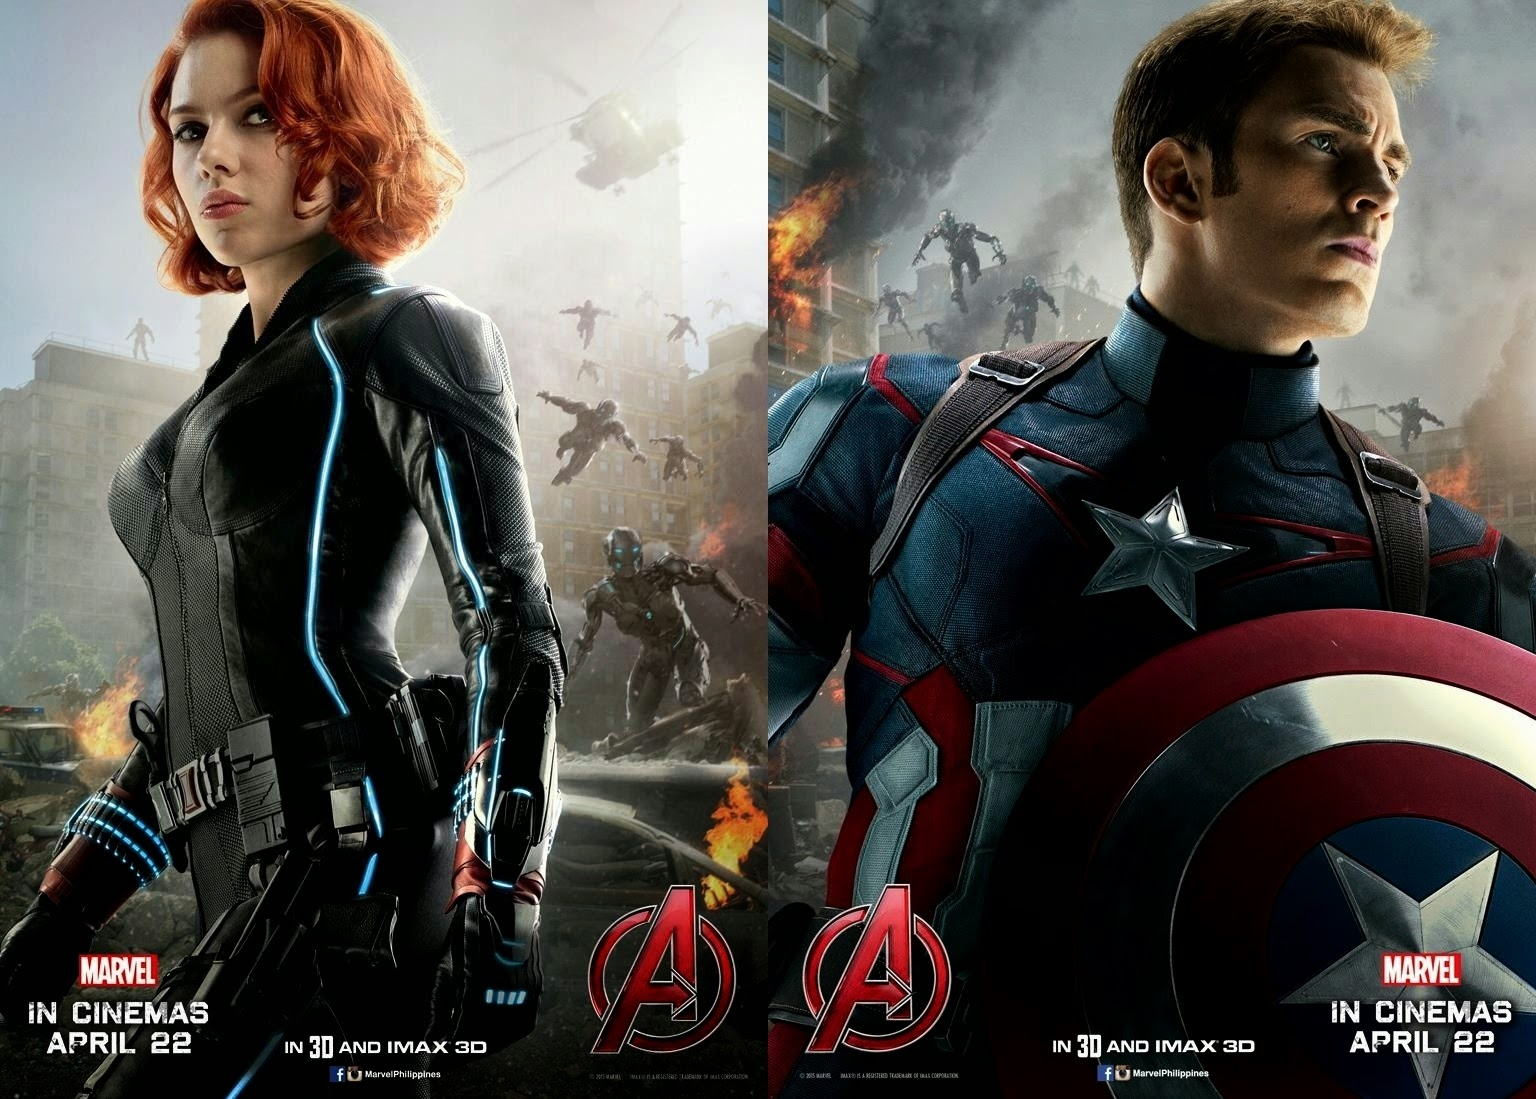 Black Widow and Captain America Movie Poster